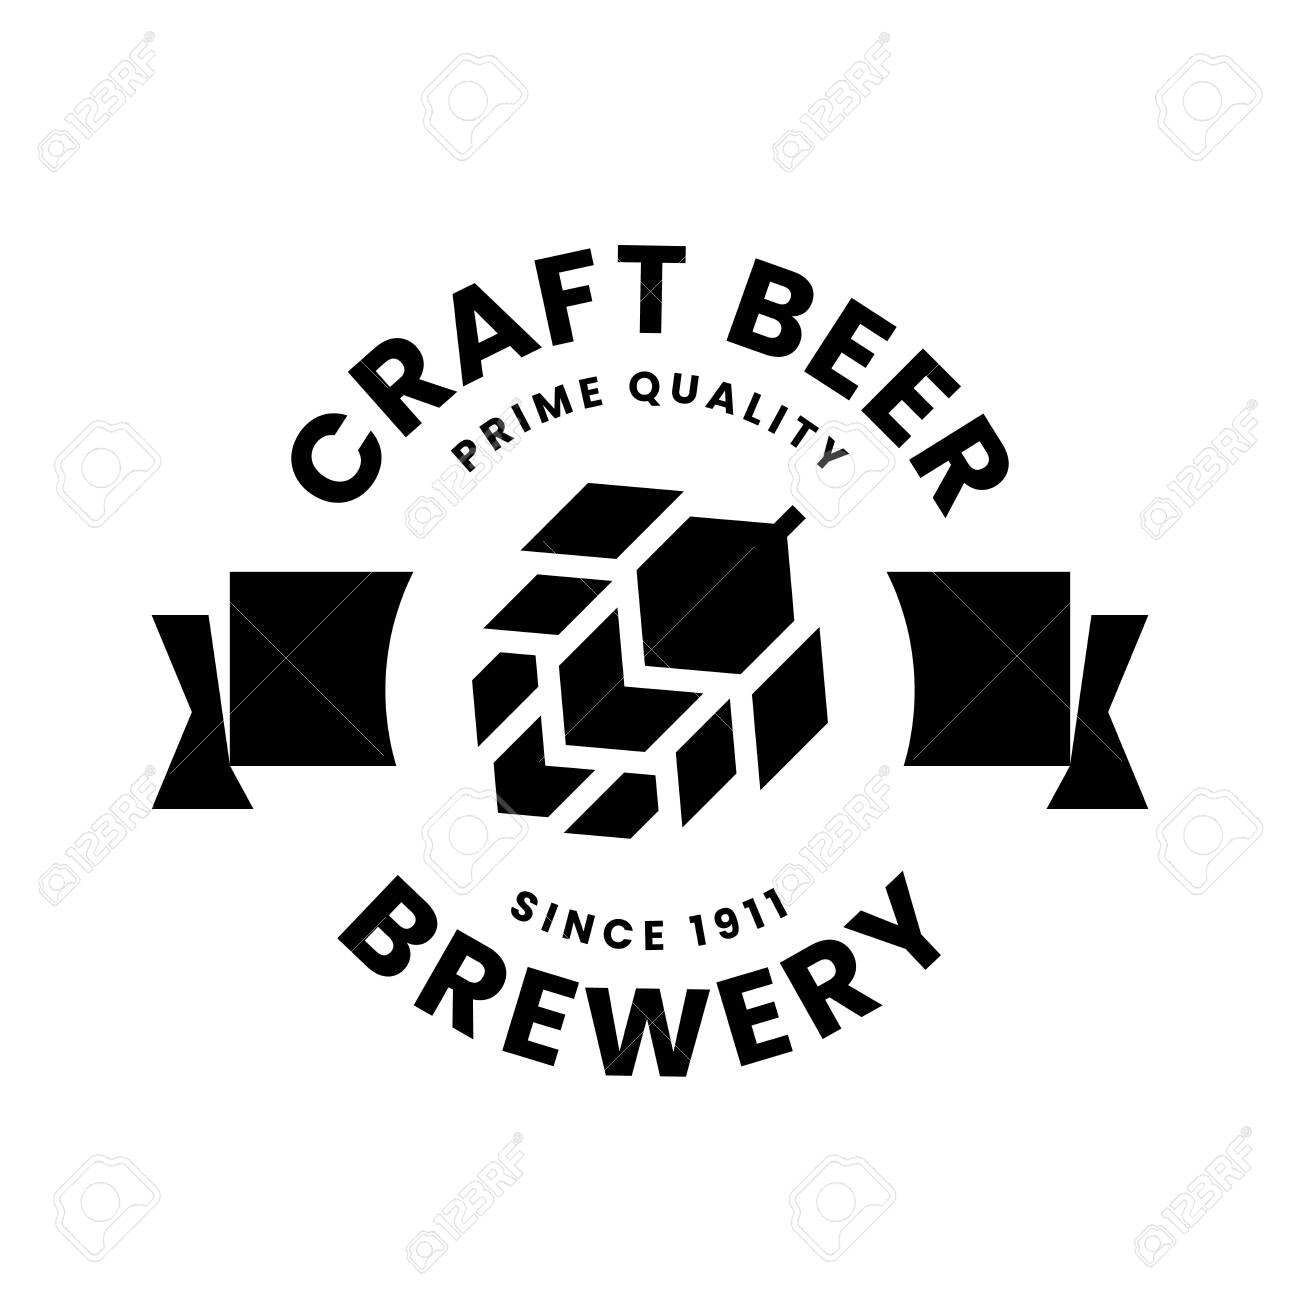 Modern round craft beer drink vector logo sign for bar, pub, store, brewhouse or brewery isolated on white background. Premium quality hop logotype illustration. Brewing fest t-shirt badge design. - 120438740